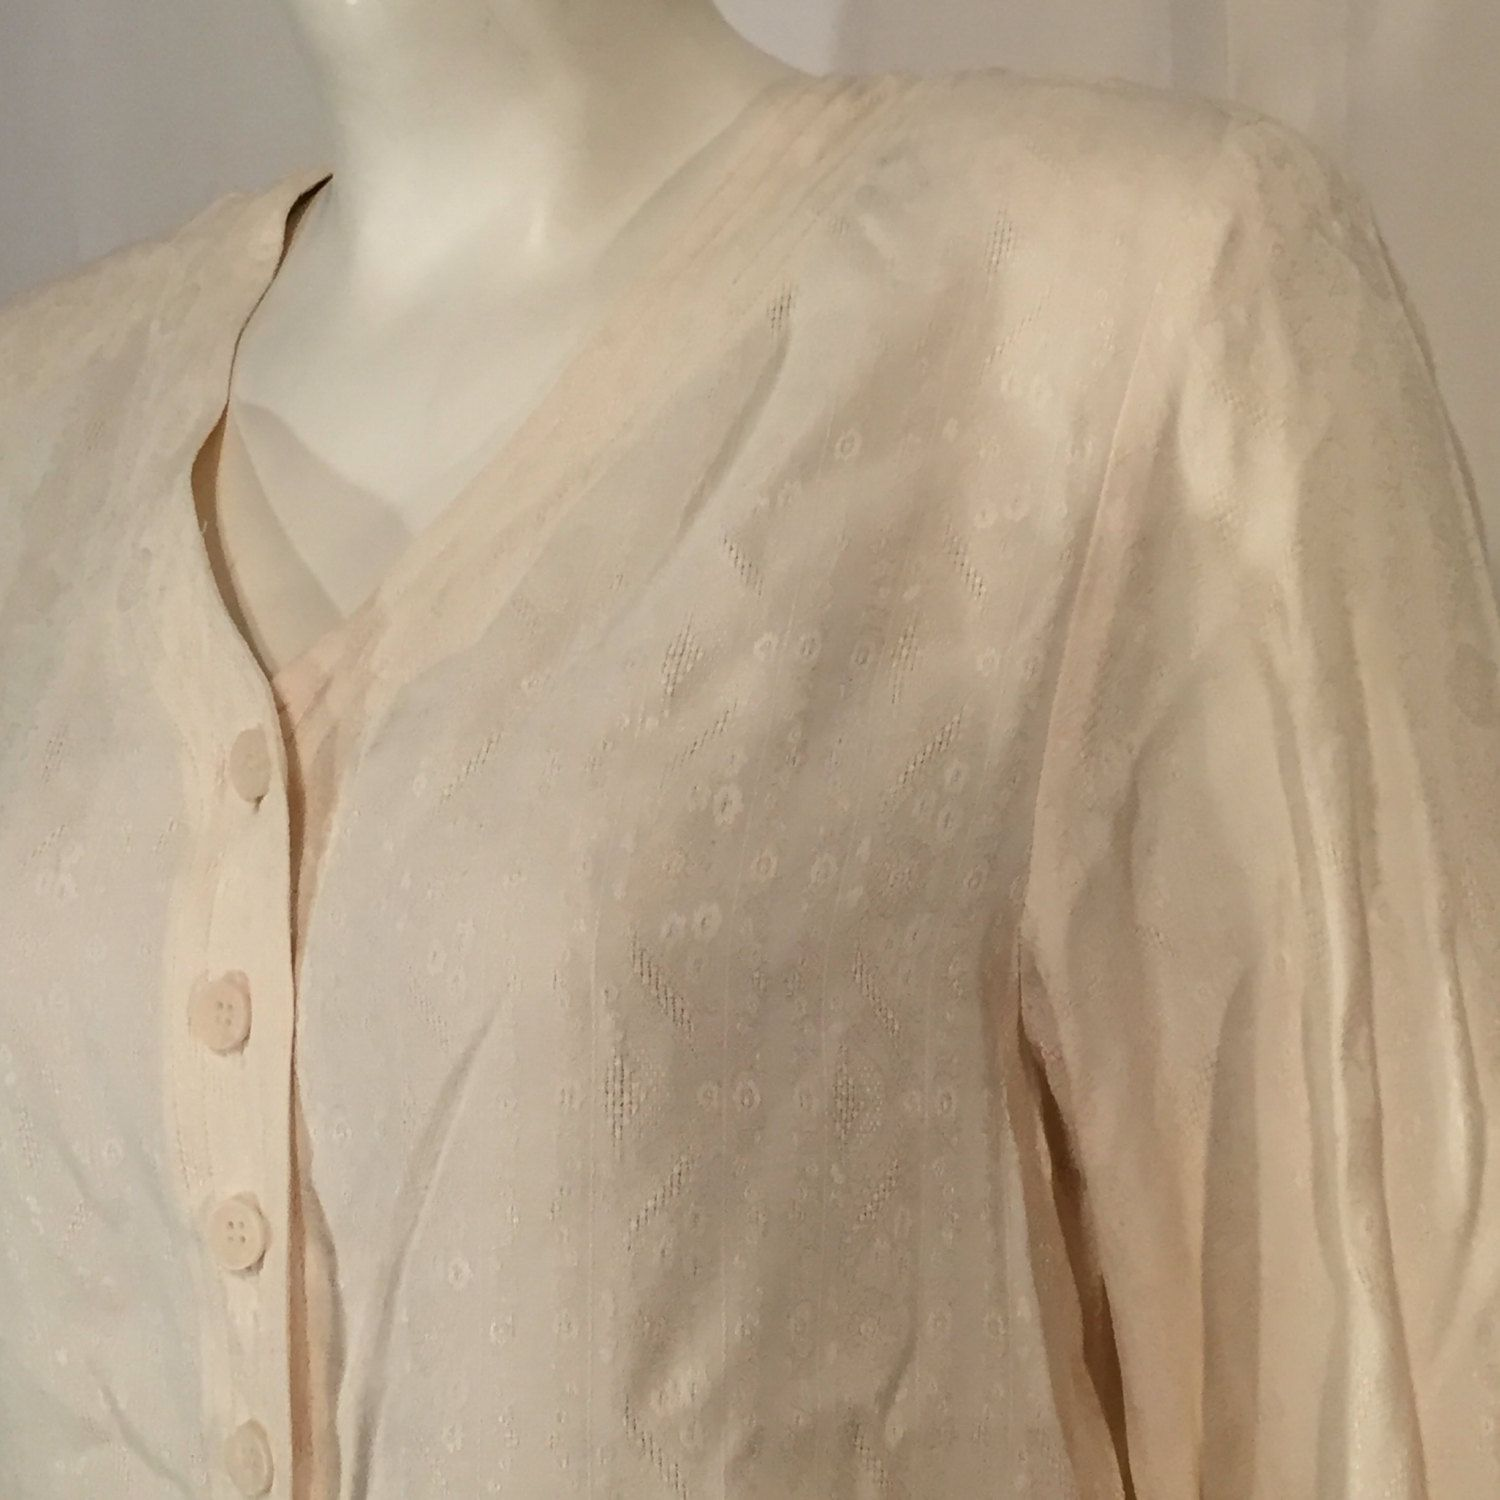 b83dd0bddf6f8d Vintage 90s Sigrid Olsen Small S Off White Cream Long Sleeve Button V Neck Shirt  Blouse Flower and Woven Pattern Carole Little Made in USA by ...